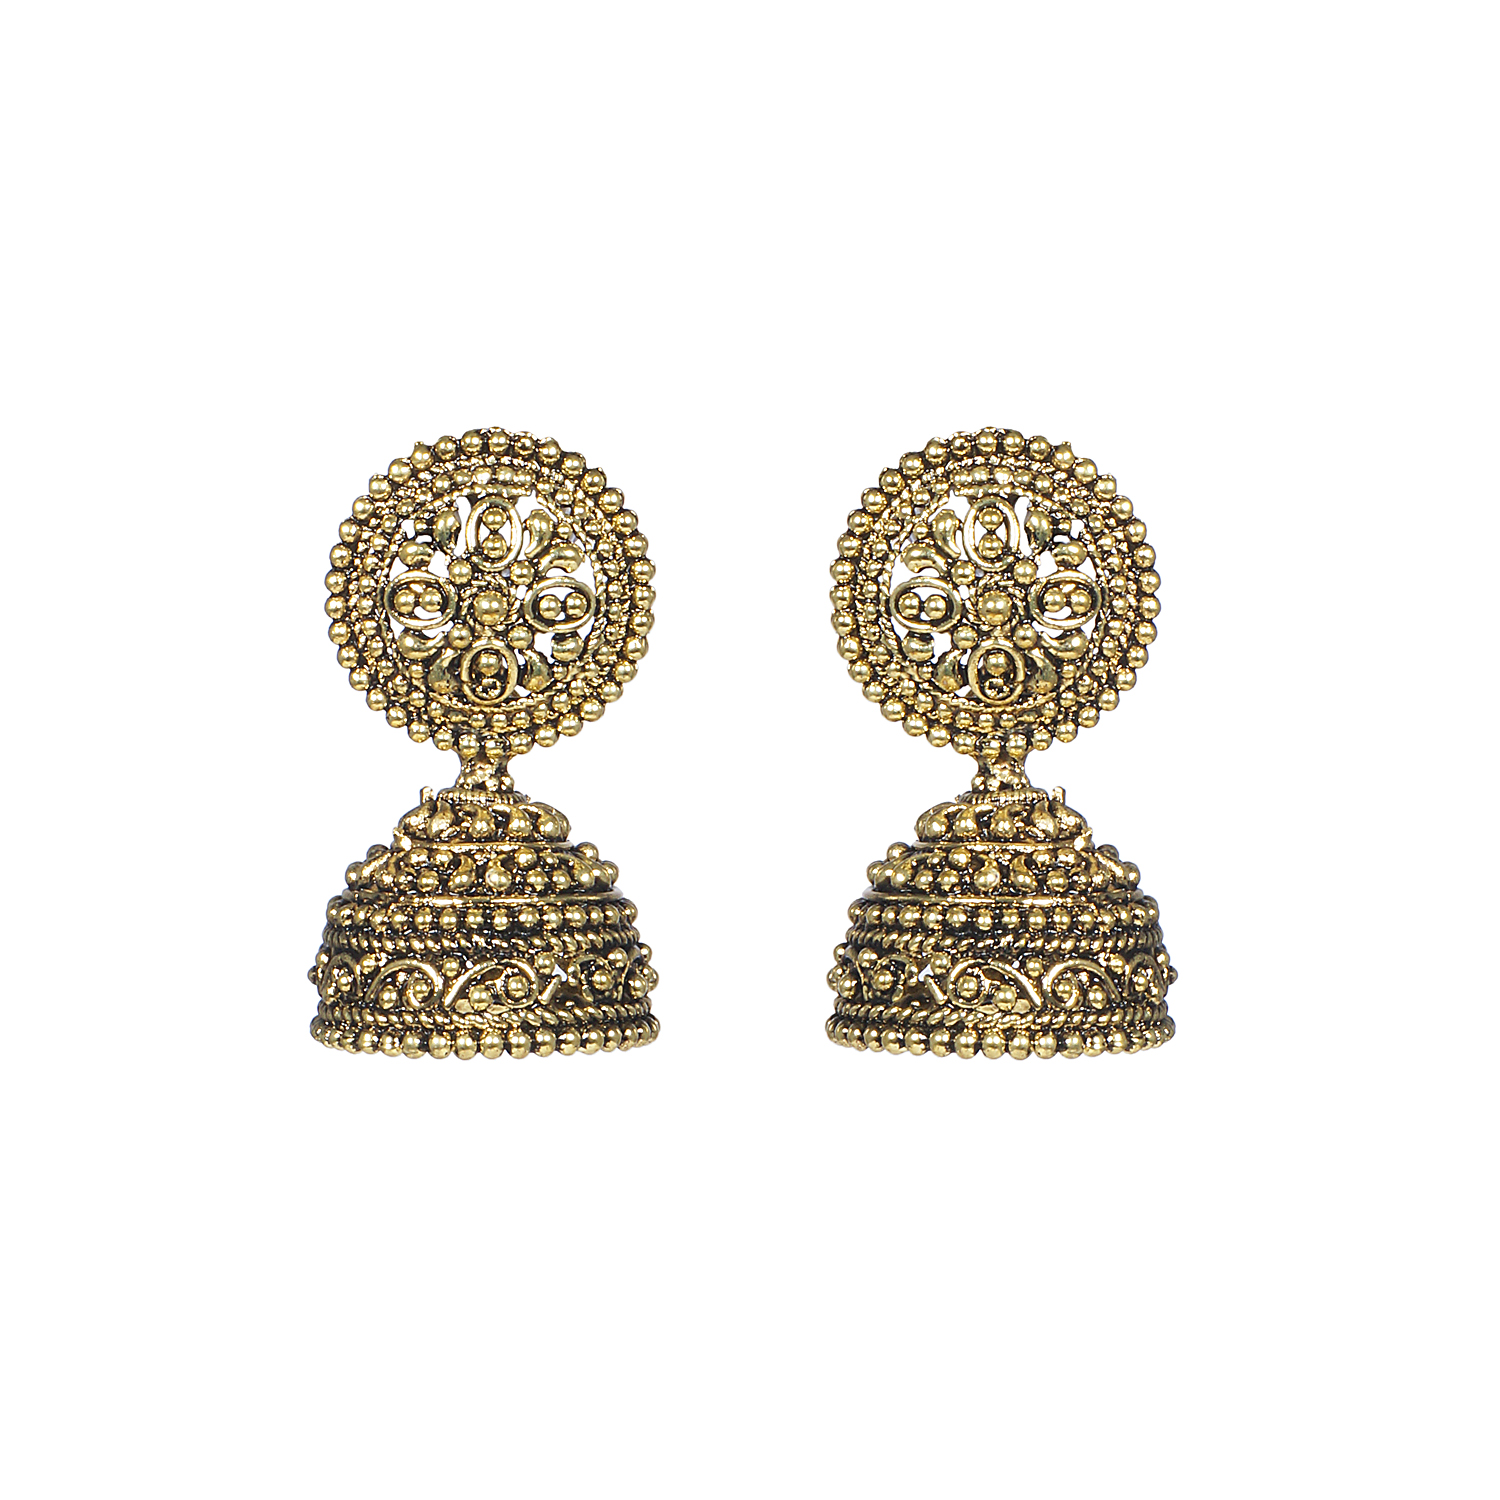 Jhumkas earrings temple jewellery earrings jhumkas in 22k for Online designs